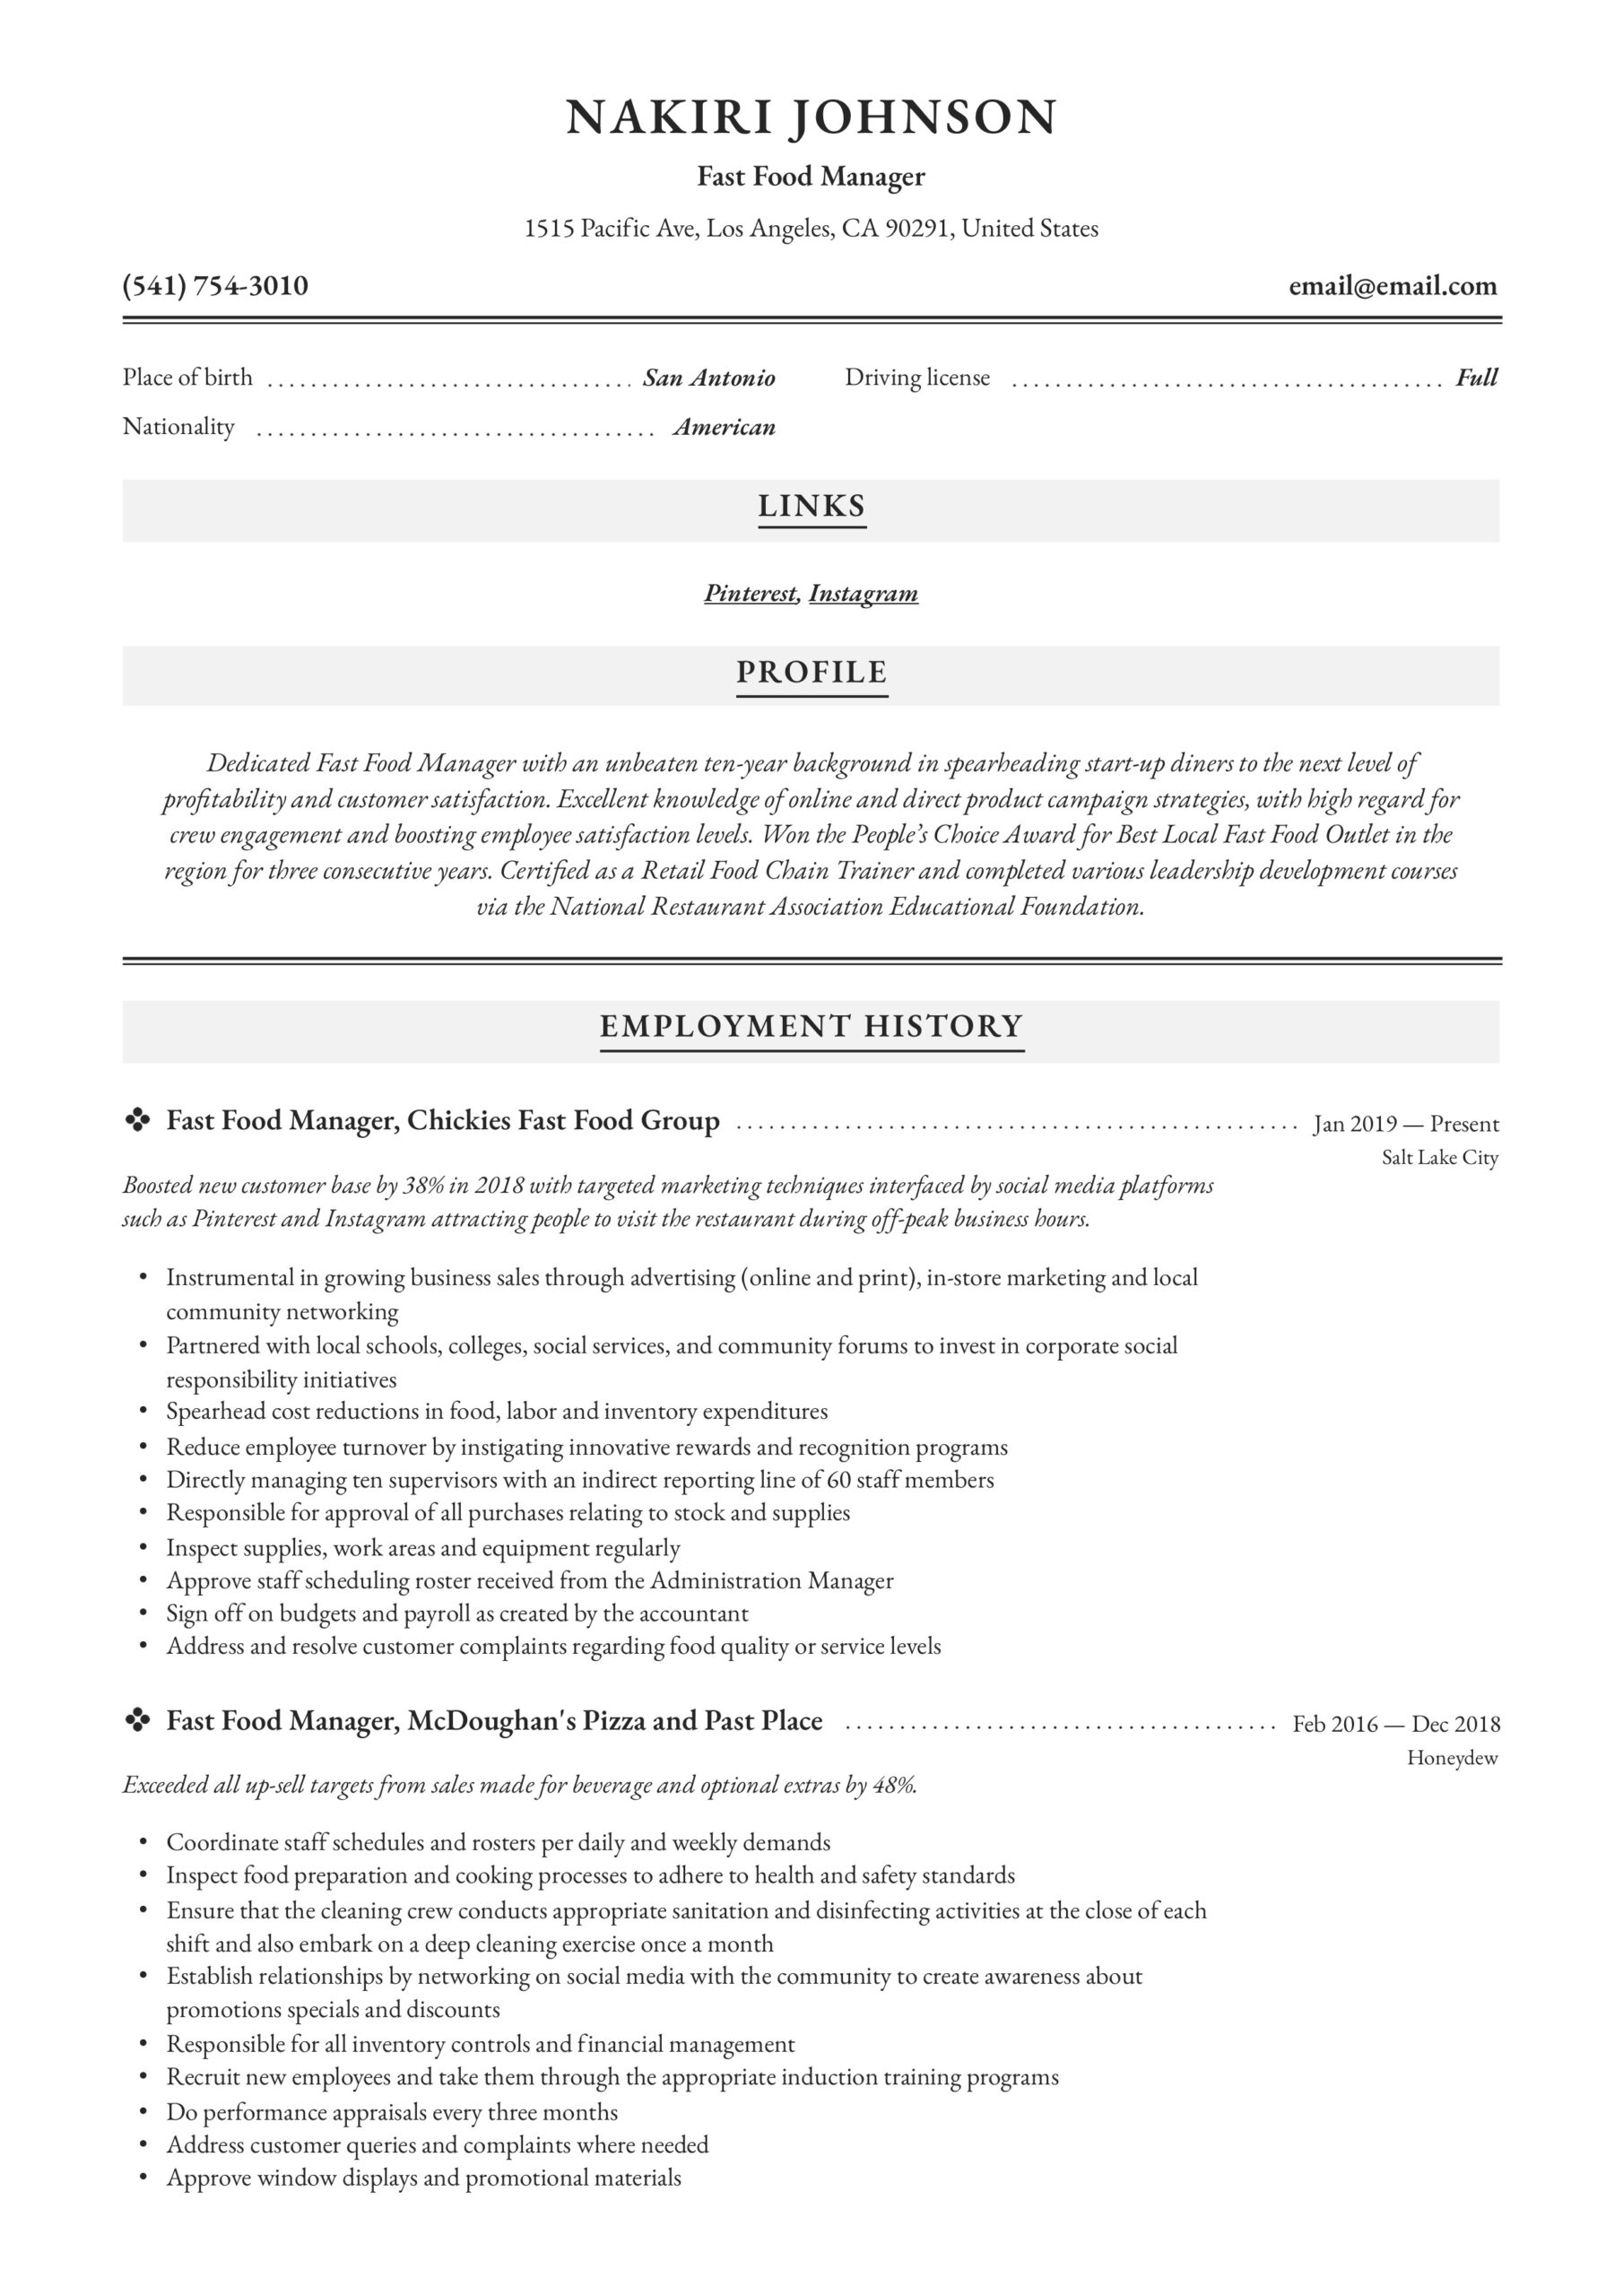 fast food manager resume writing guide examples shift job description for better samples Resume Shift Manager Job Description For Resume